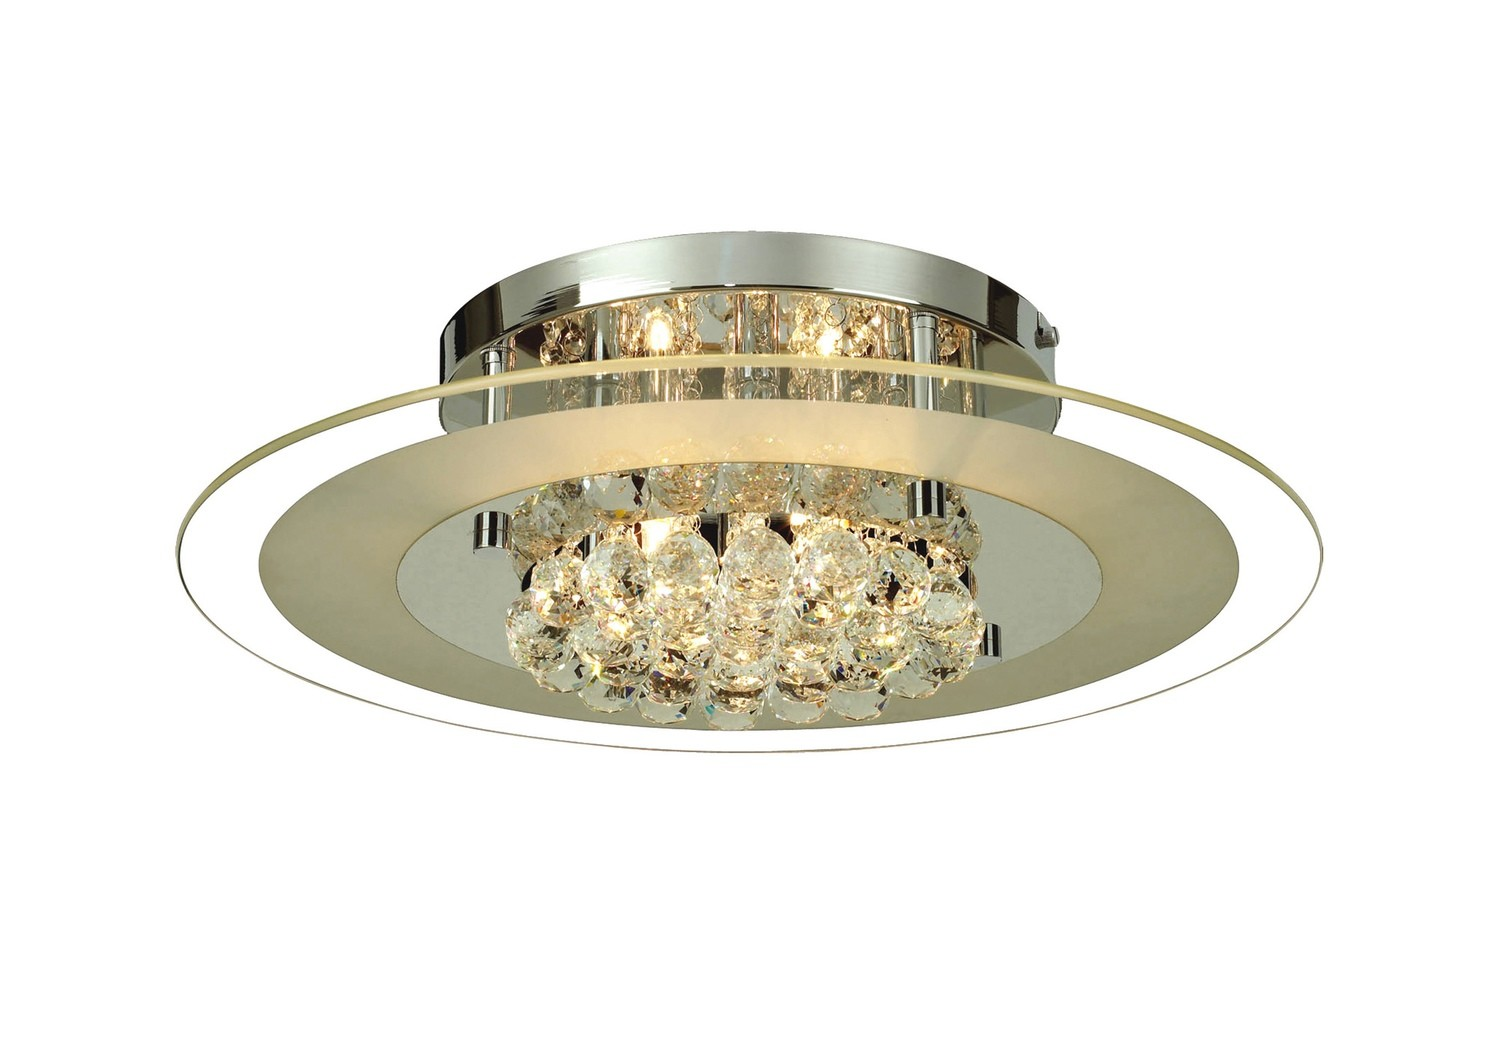 Delmar Ceiling Round 6 Light Polished Chrome/Glass/Crystal